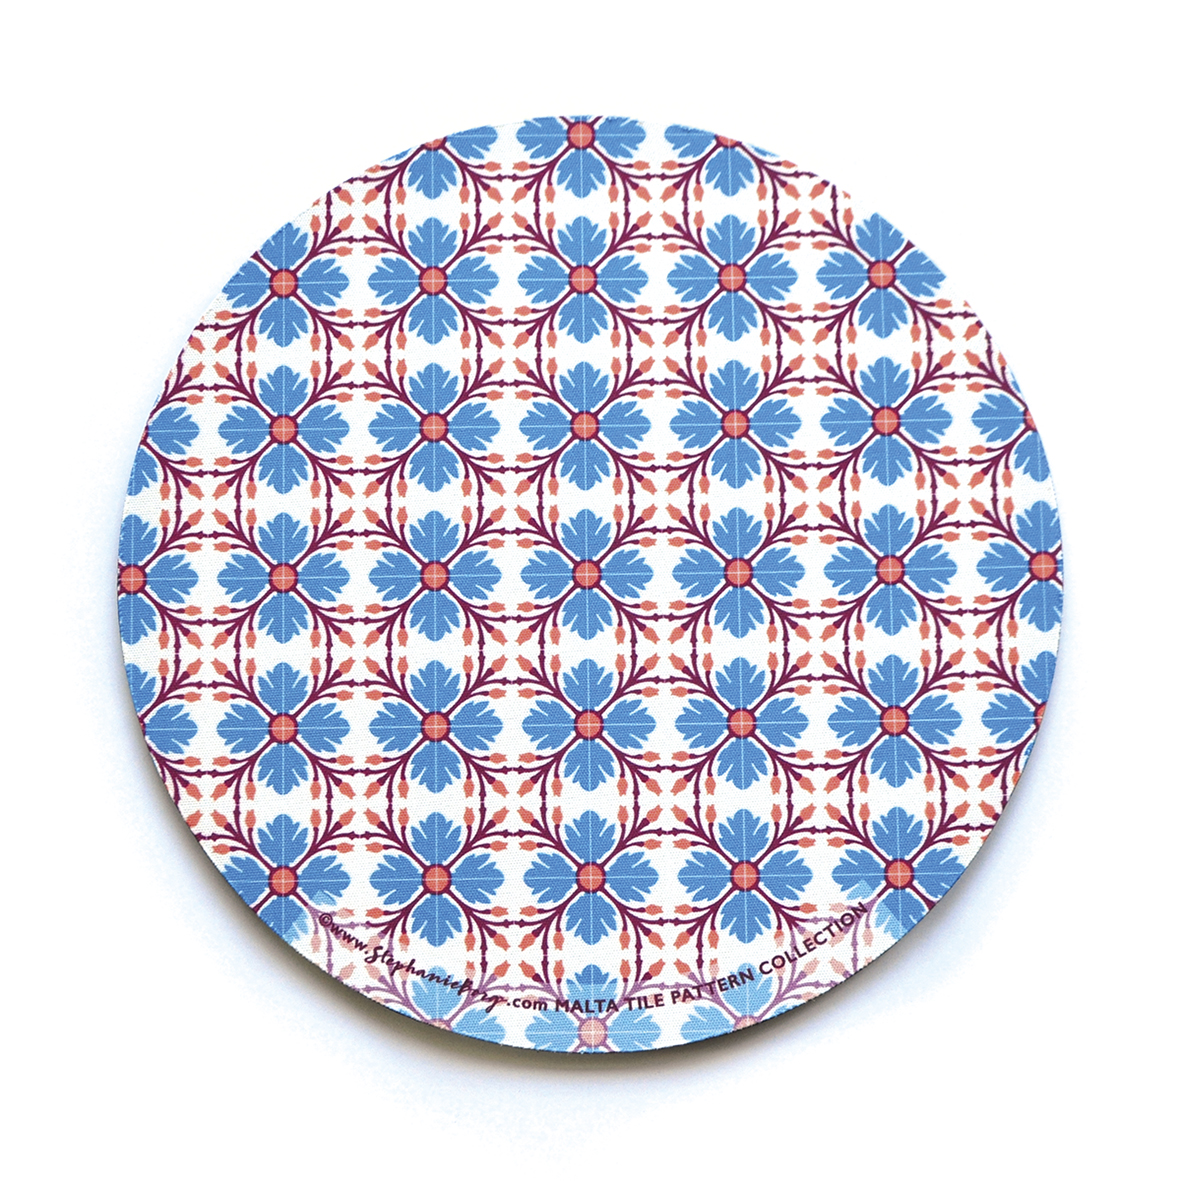 Mousepad with Maltese Tile Patterns, pattern no.9